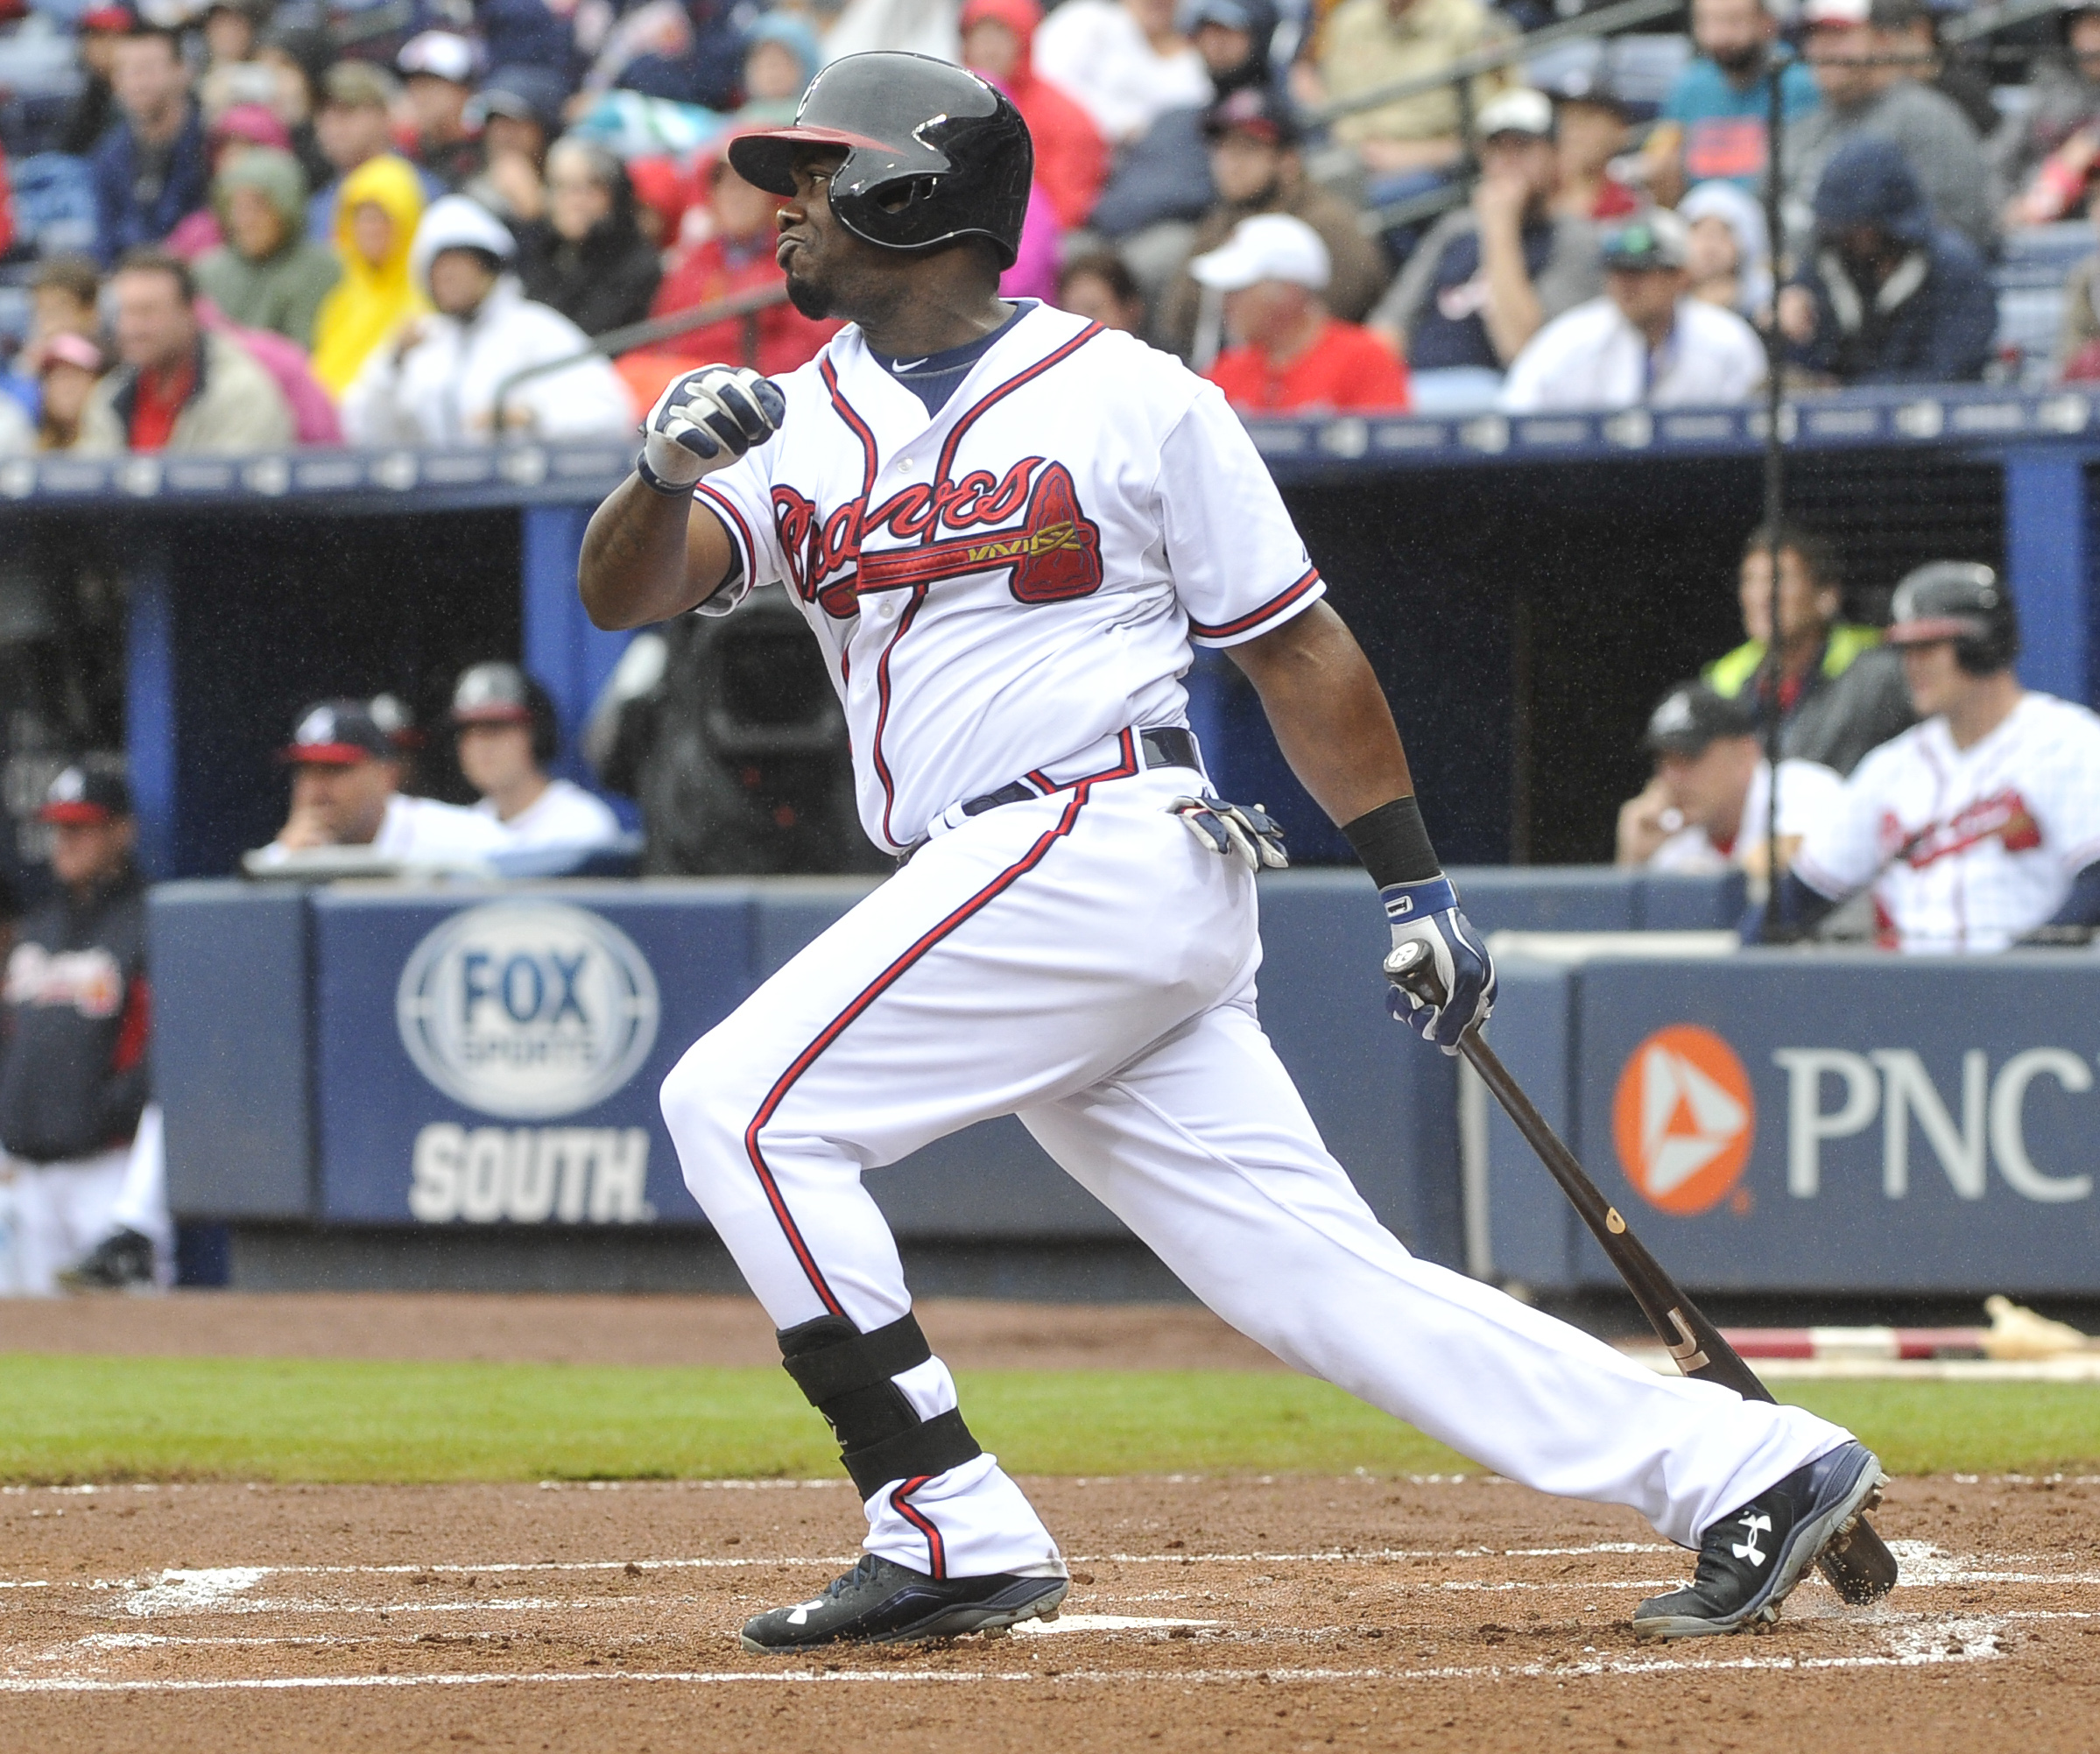 Atlanta Braves' Adonis Garcia (24) during singles on a line drive to center field hitting in Michael Bourn during the first inning of the second baseball game of a doubleheader, Sunday, Oct. 4, 2015, in Atlanta. (AP Photo/John Amis)